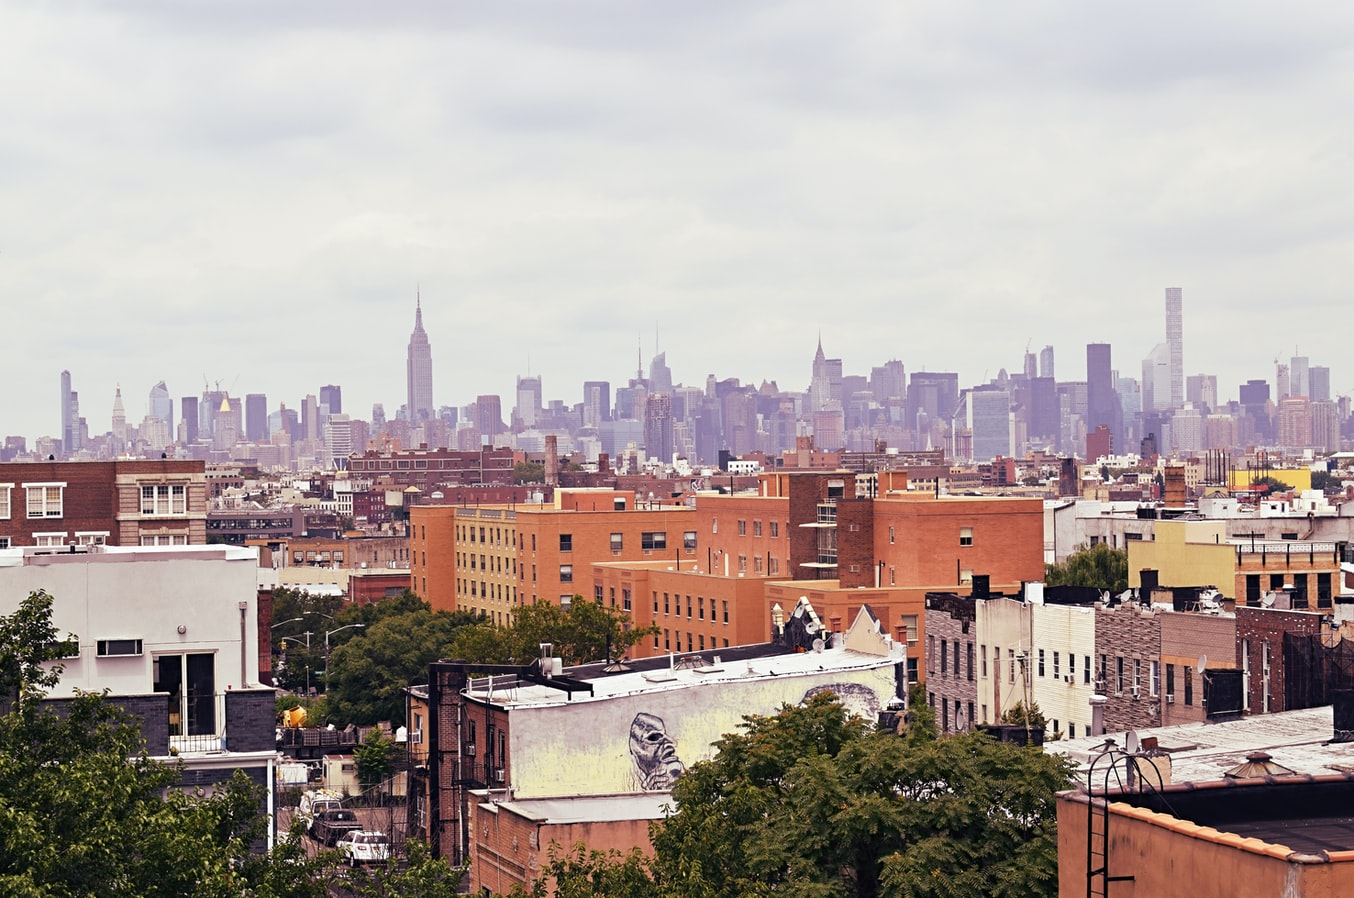 Best Amazon sellers conference: An image of the Brooklyn and New York City skyline.